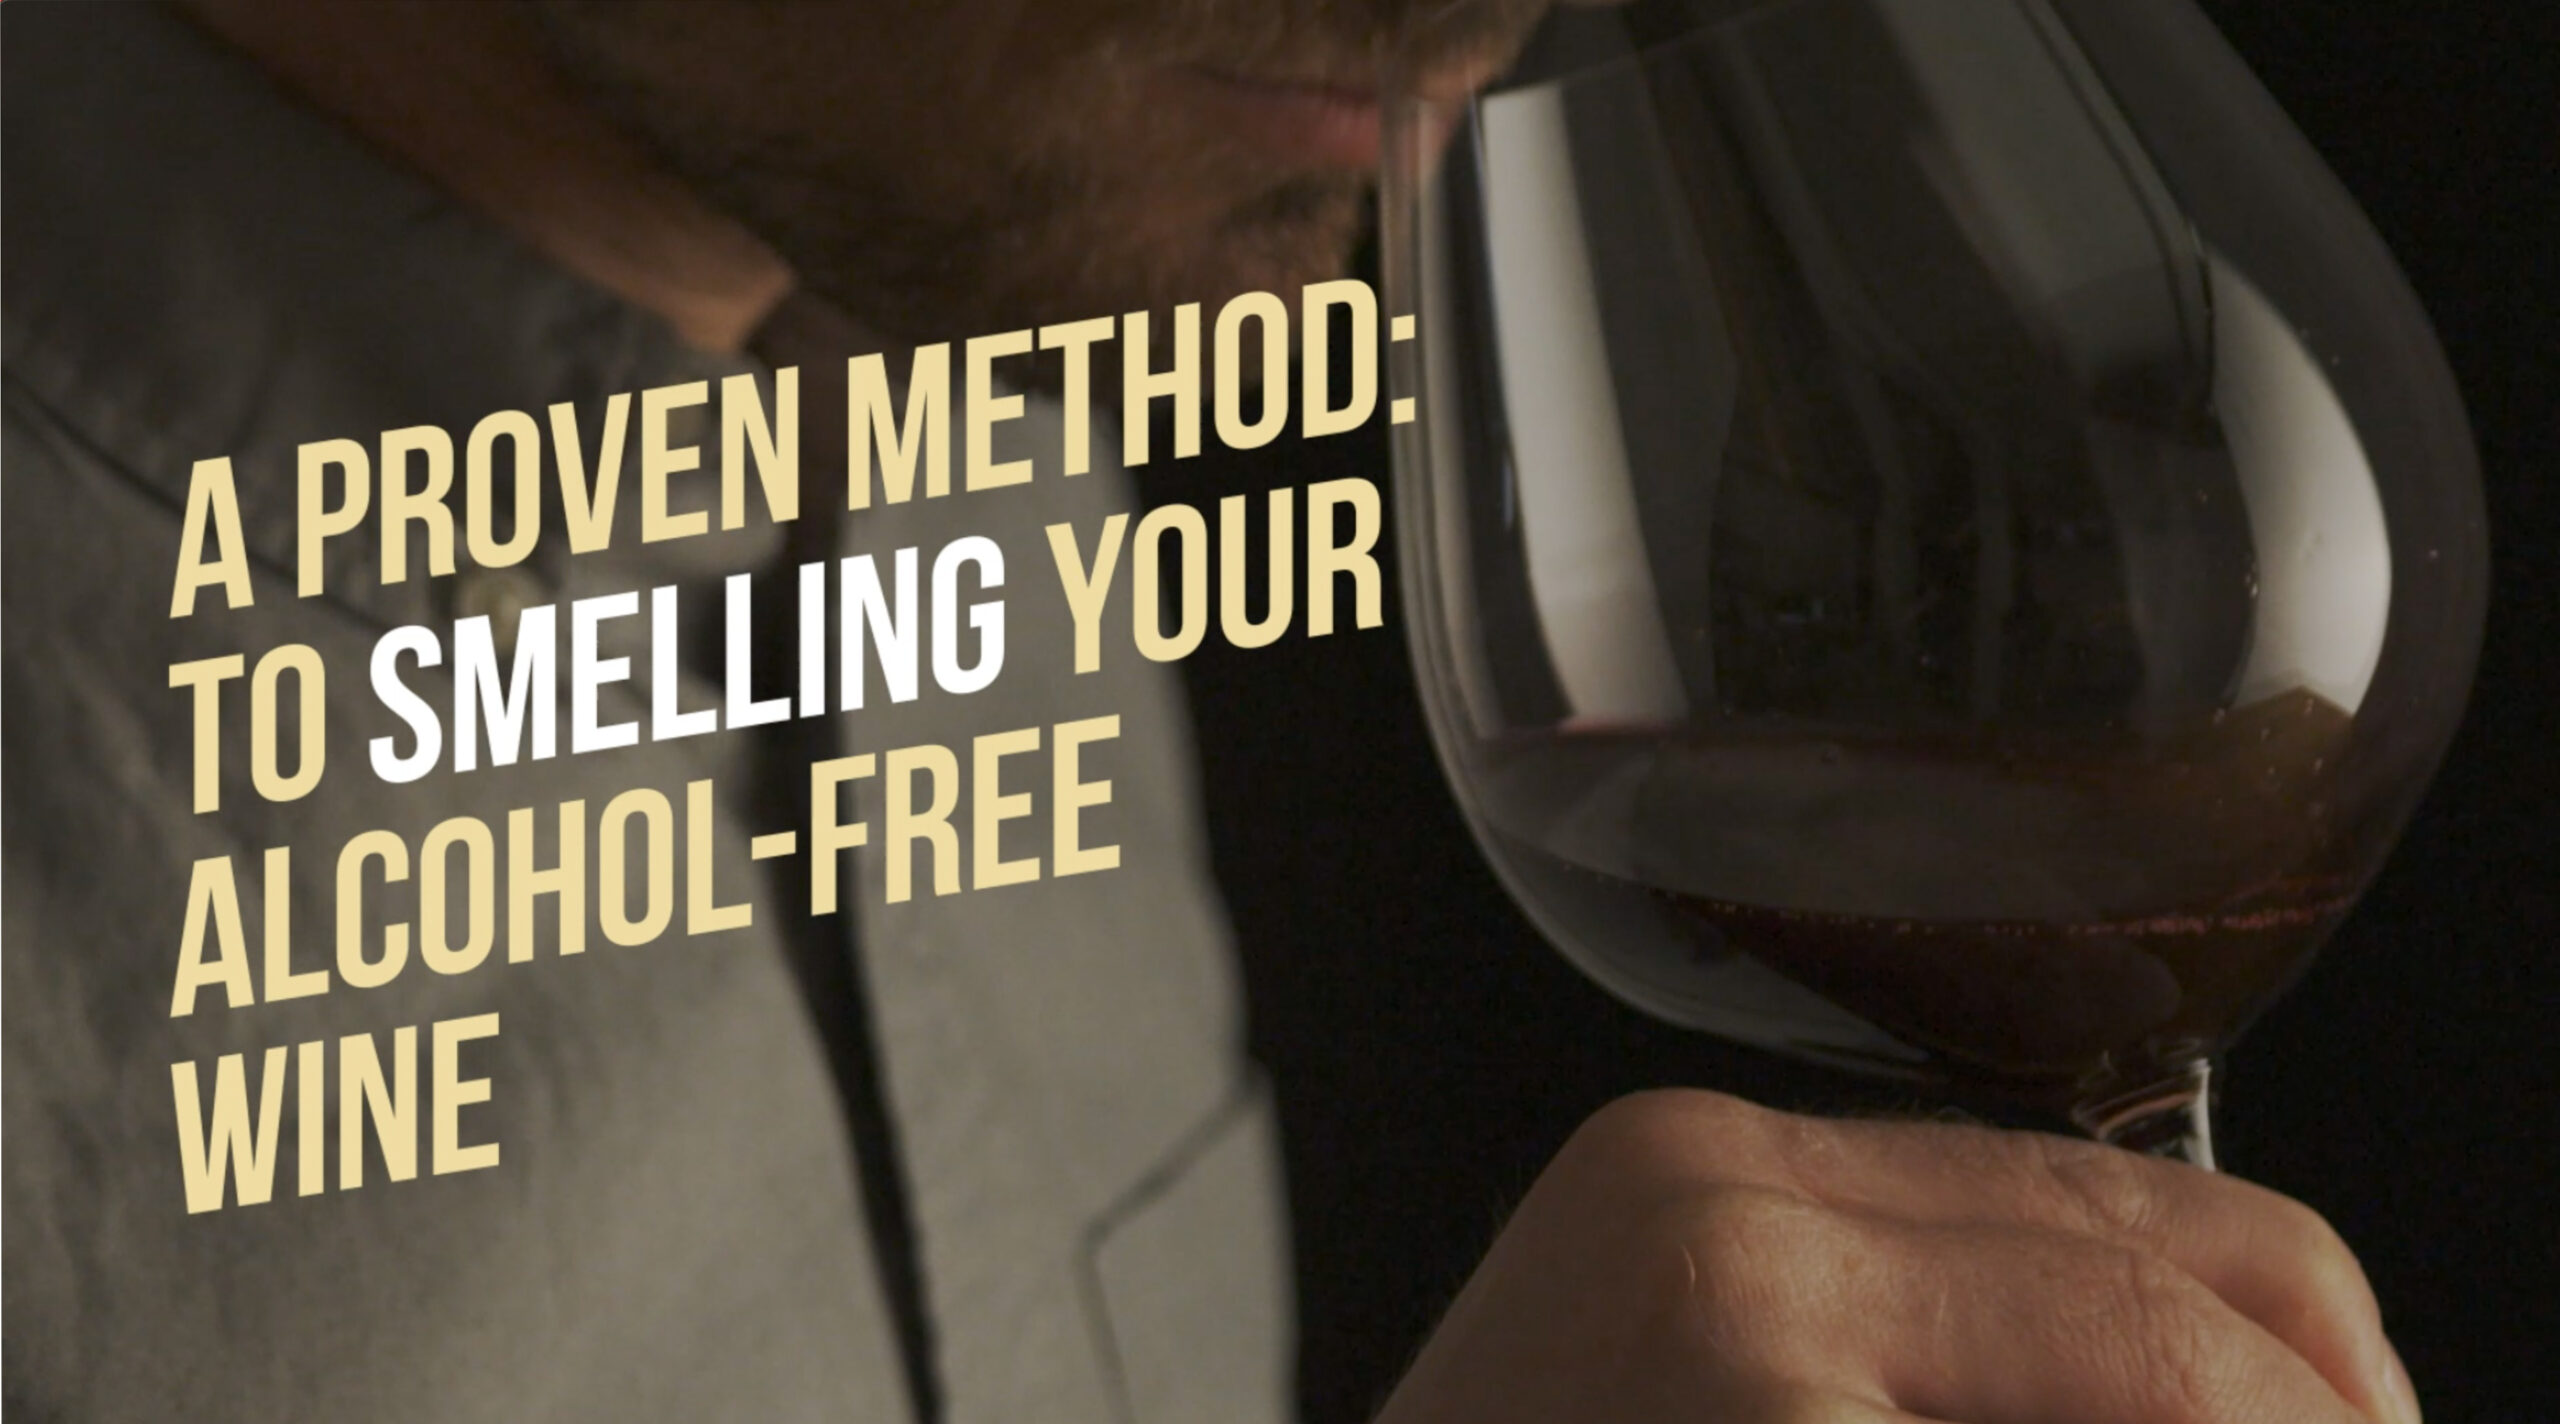 Rival House - A proven method to smelling your alcohol-free wine